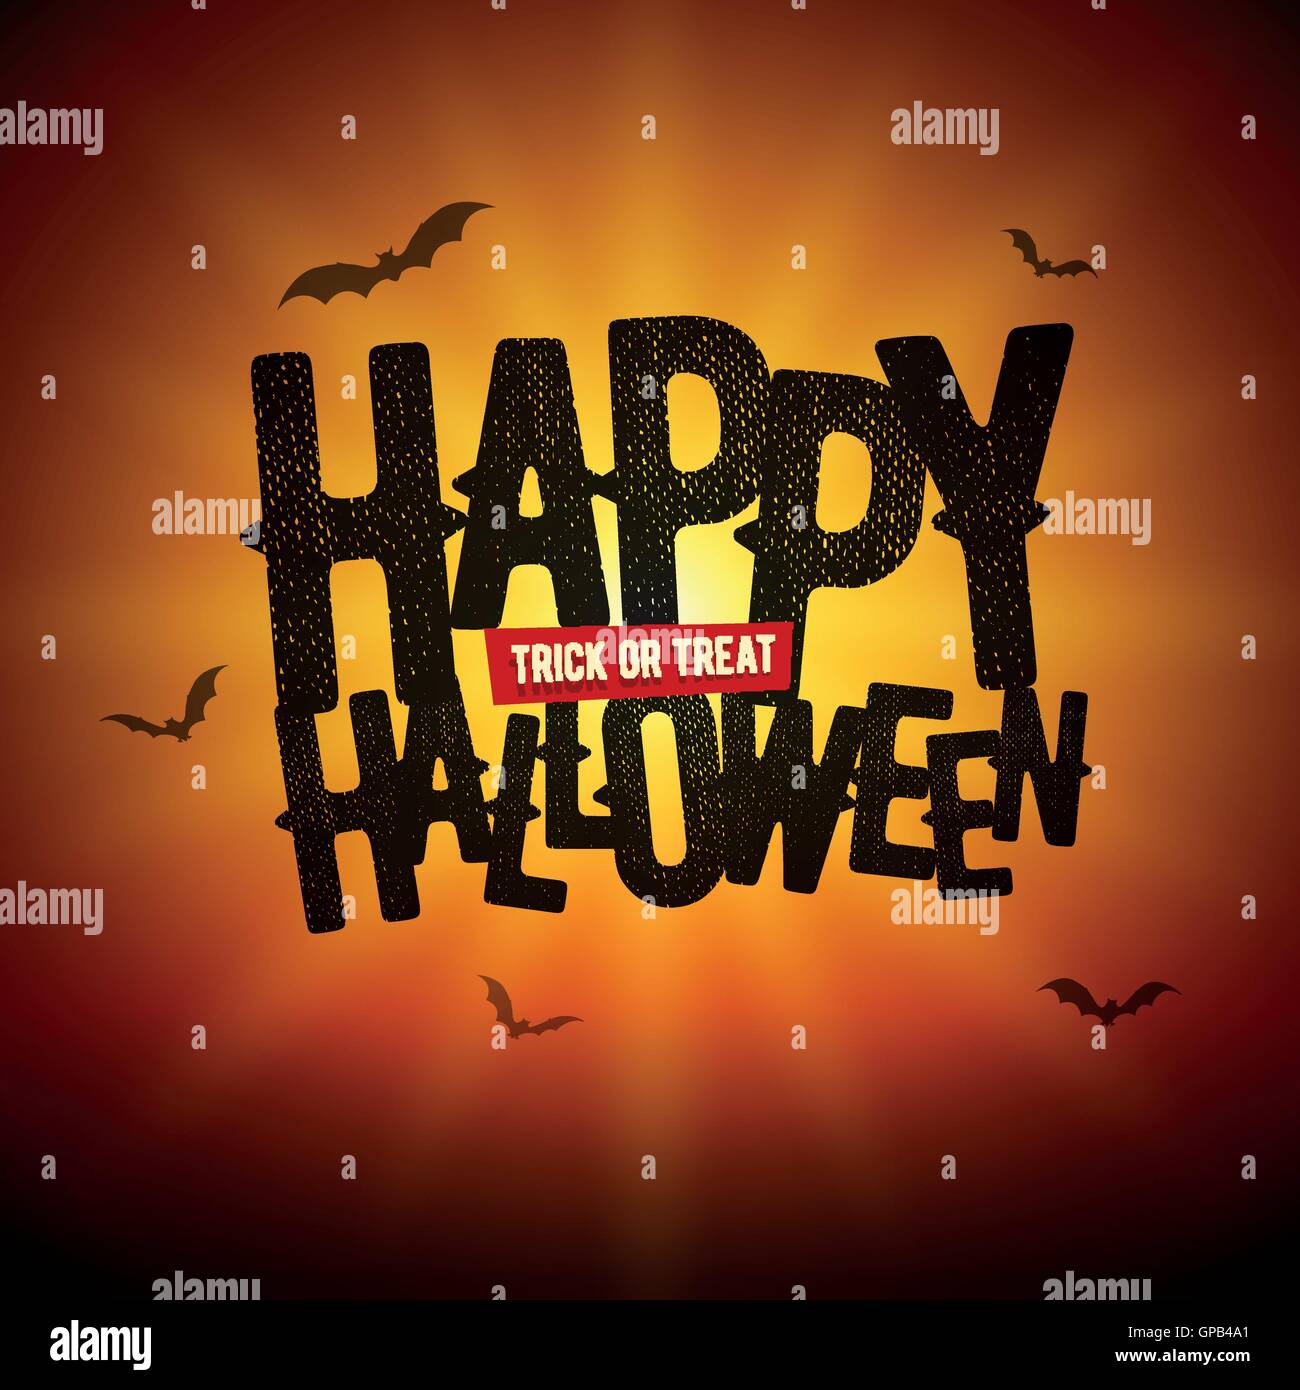 Vector Happy Halloween design with Trick or Treat text and bat silhouette illustration. - Stock Image